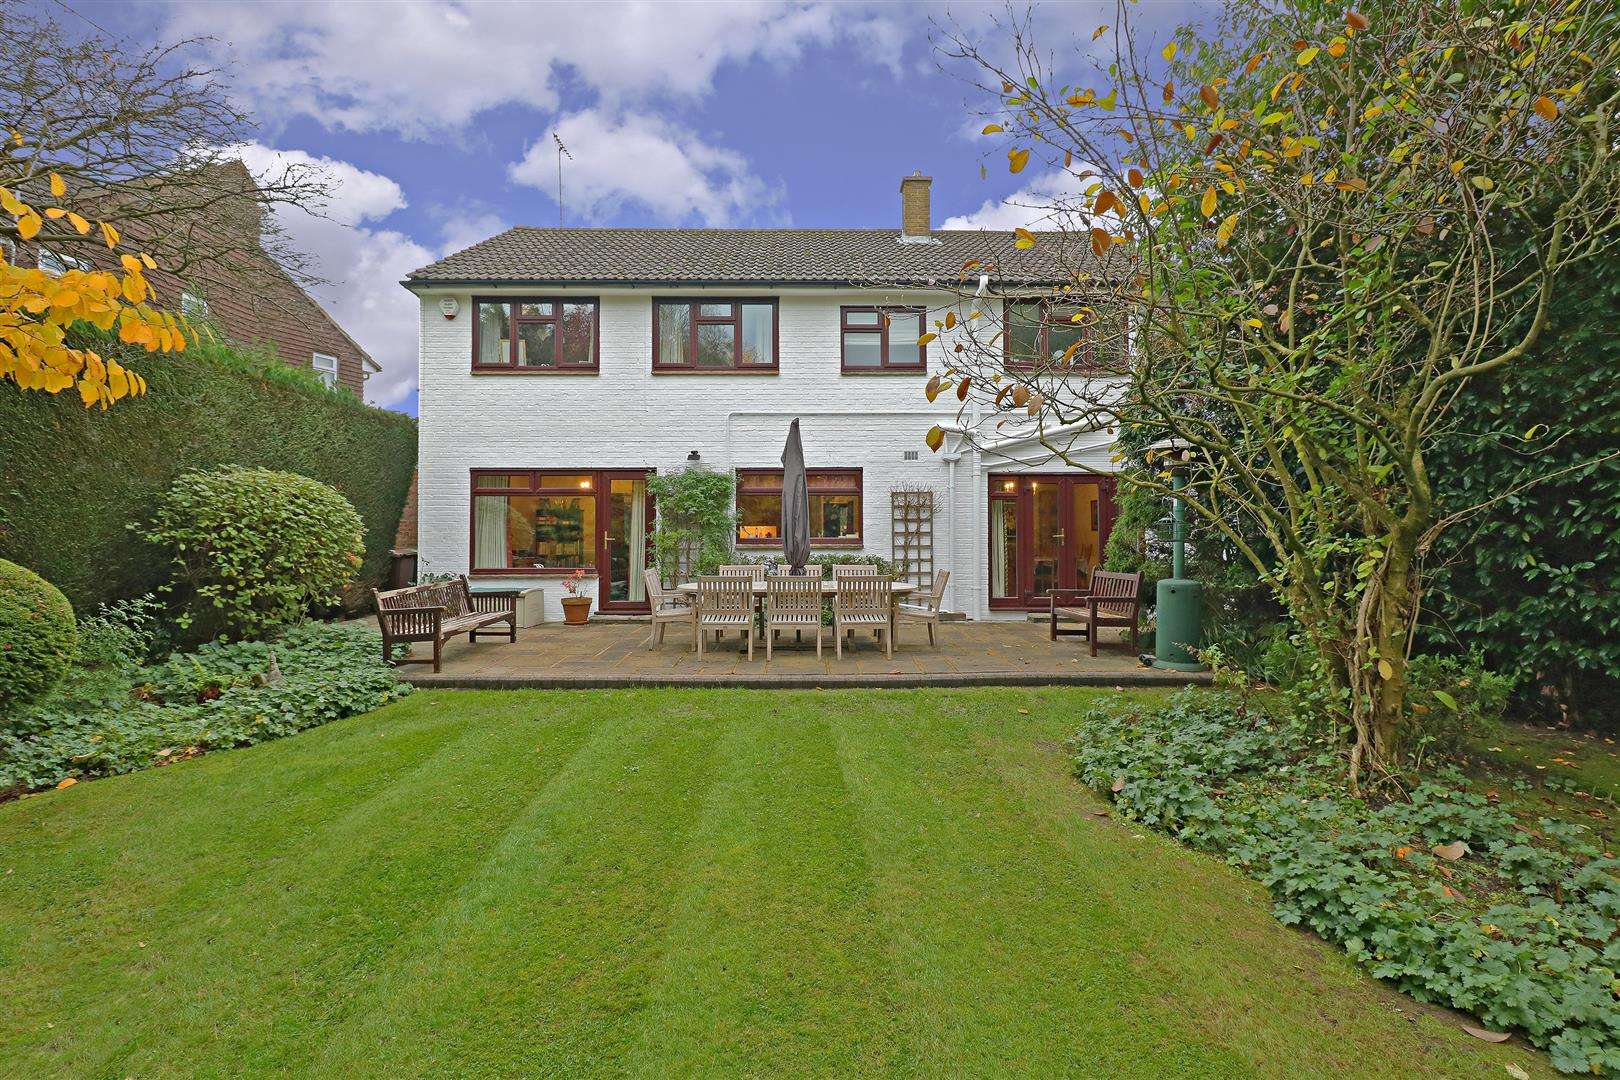 5 bed for sale - (Property Image 15)